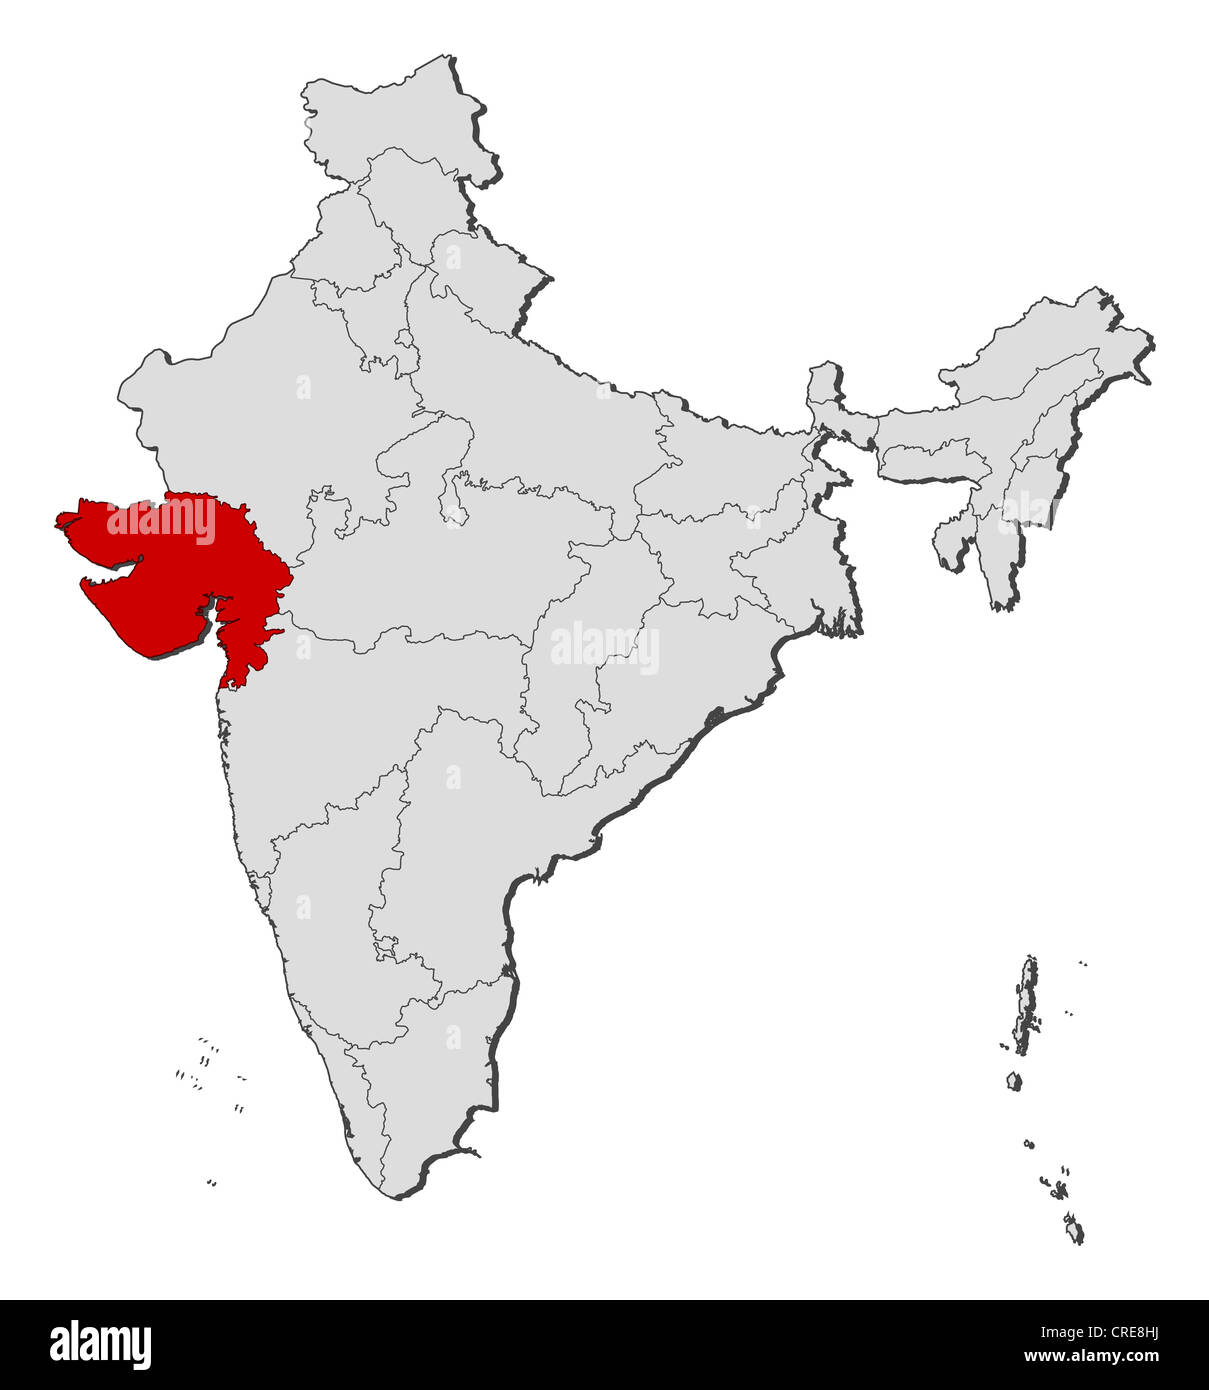 map of india gujarat Political Map Of India With The Several States Where Gujarat Is map of india gujarat